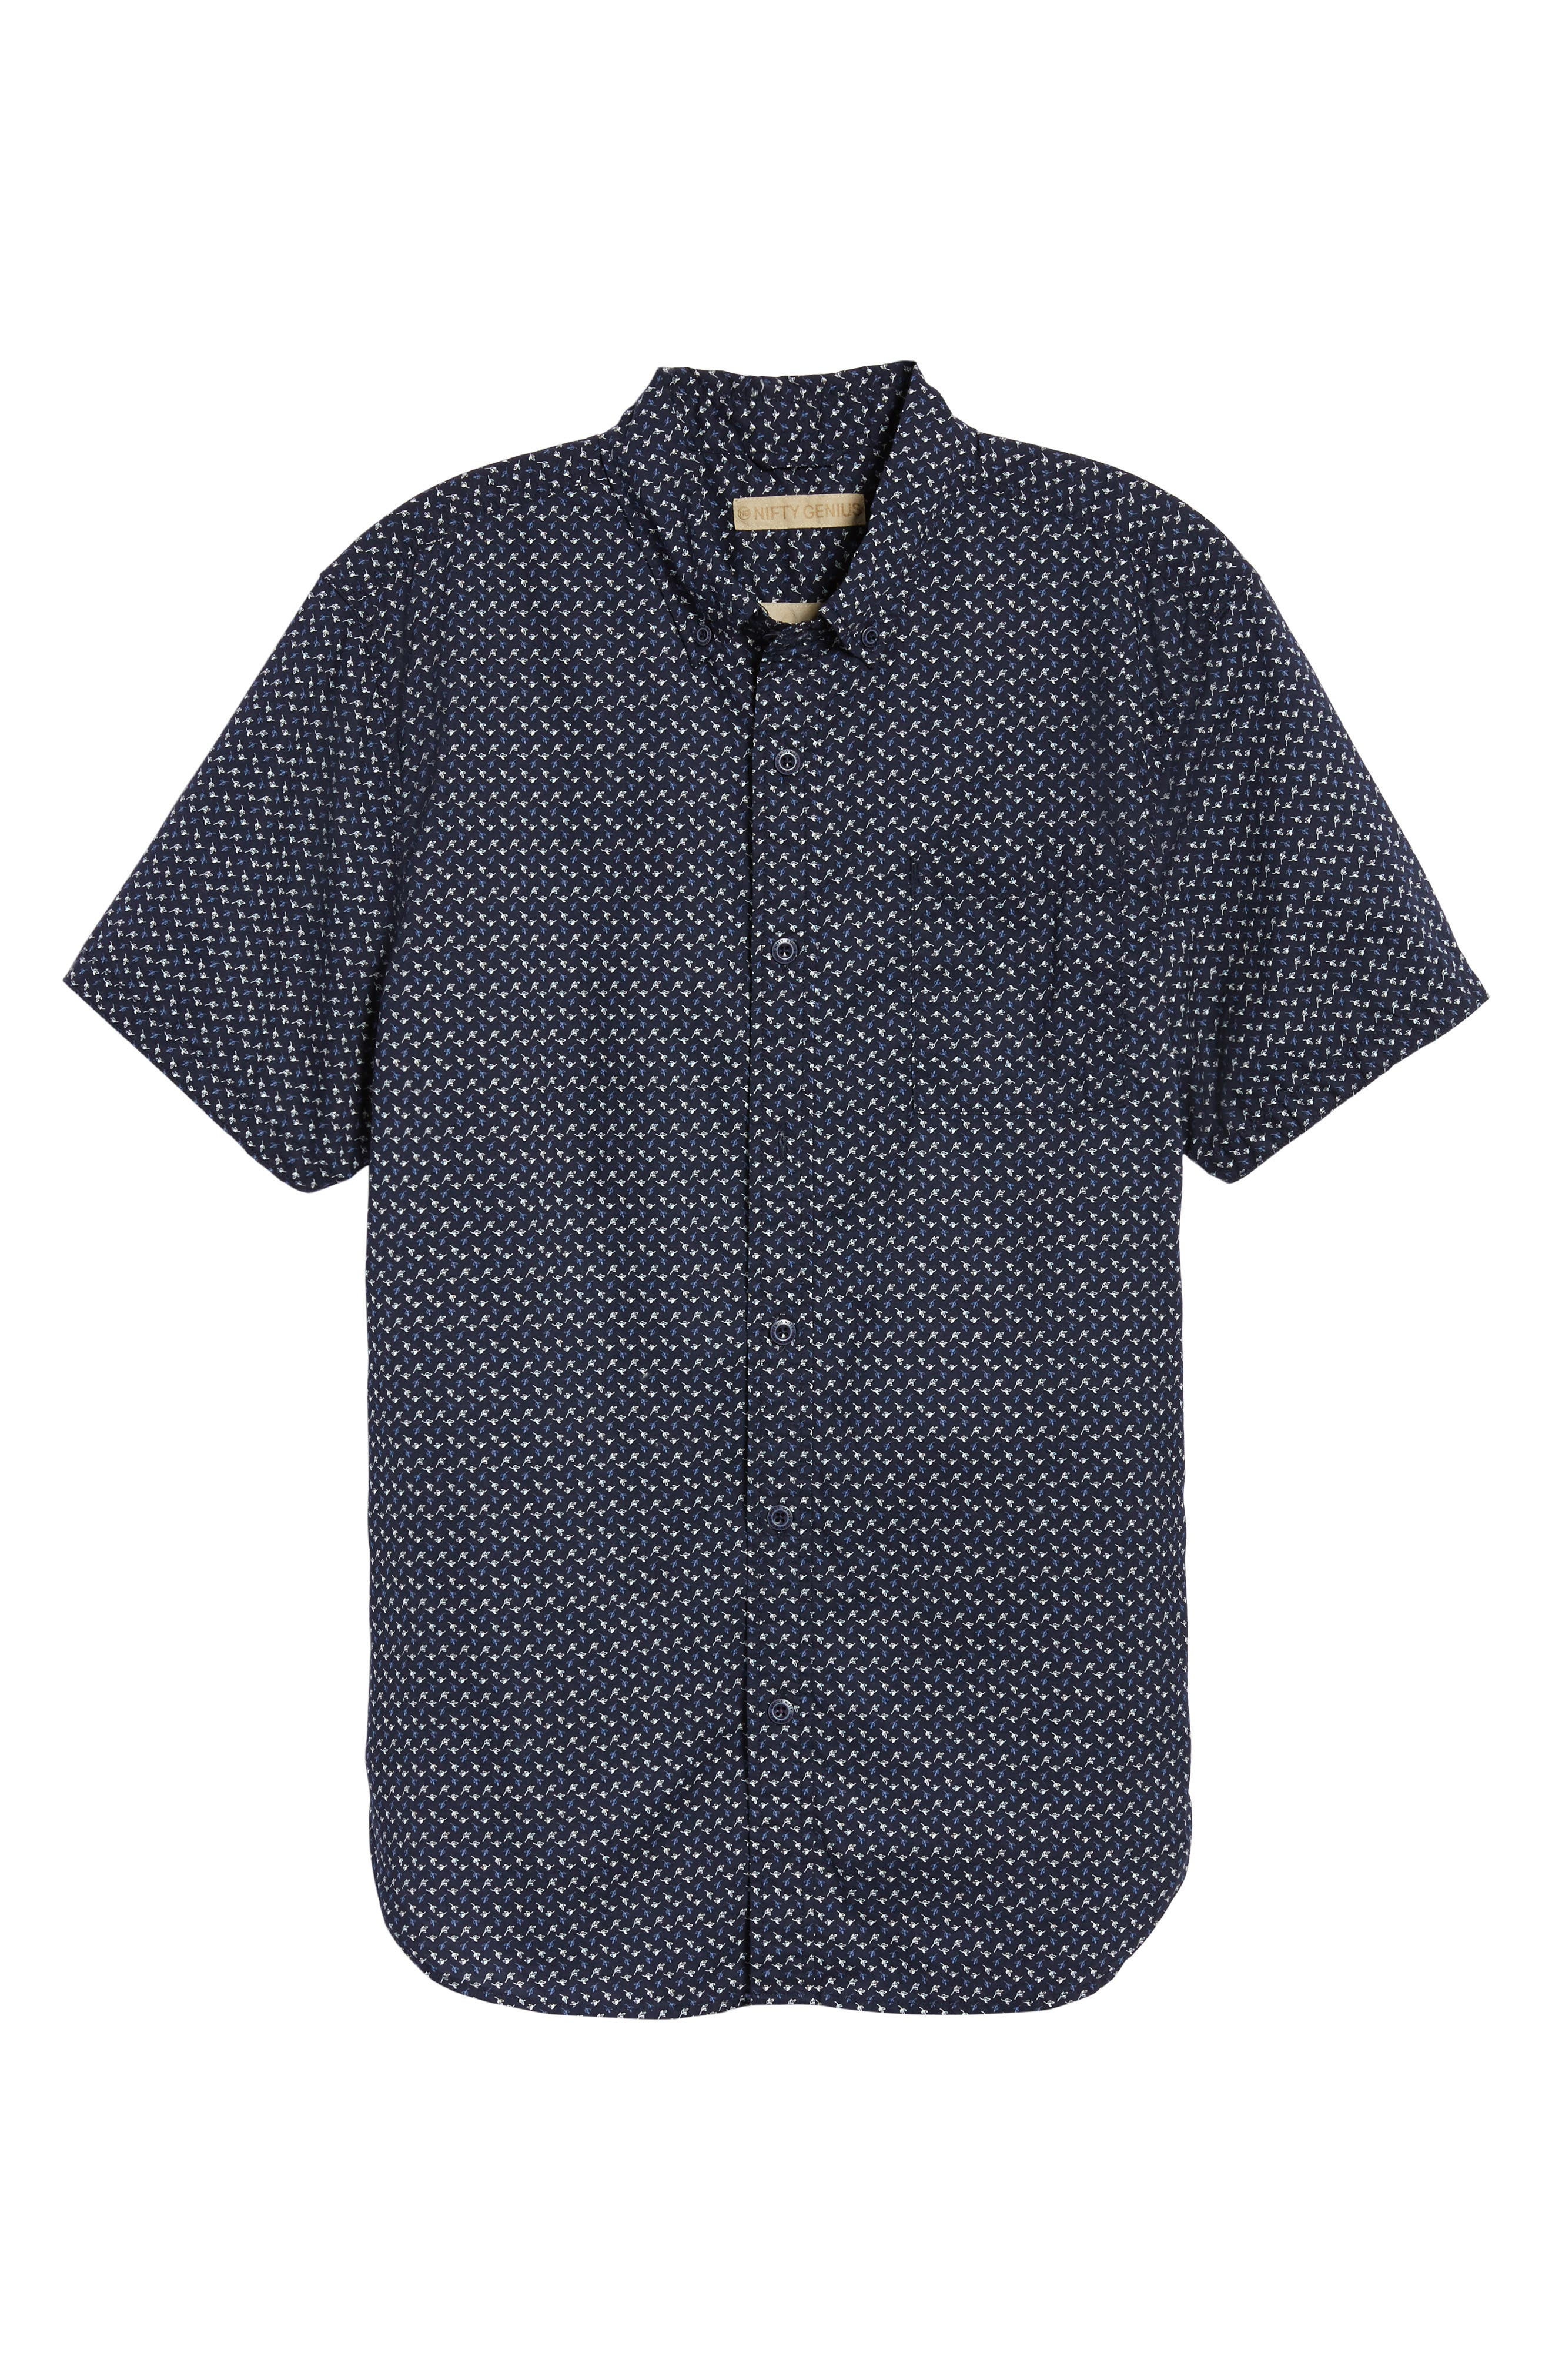 Truman Slim Fit Short Sleeve Sport Shirt,                             Alternate thumbnail 6, color,                             Navy